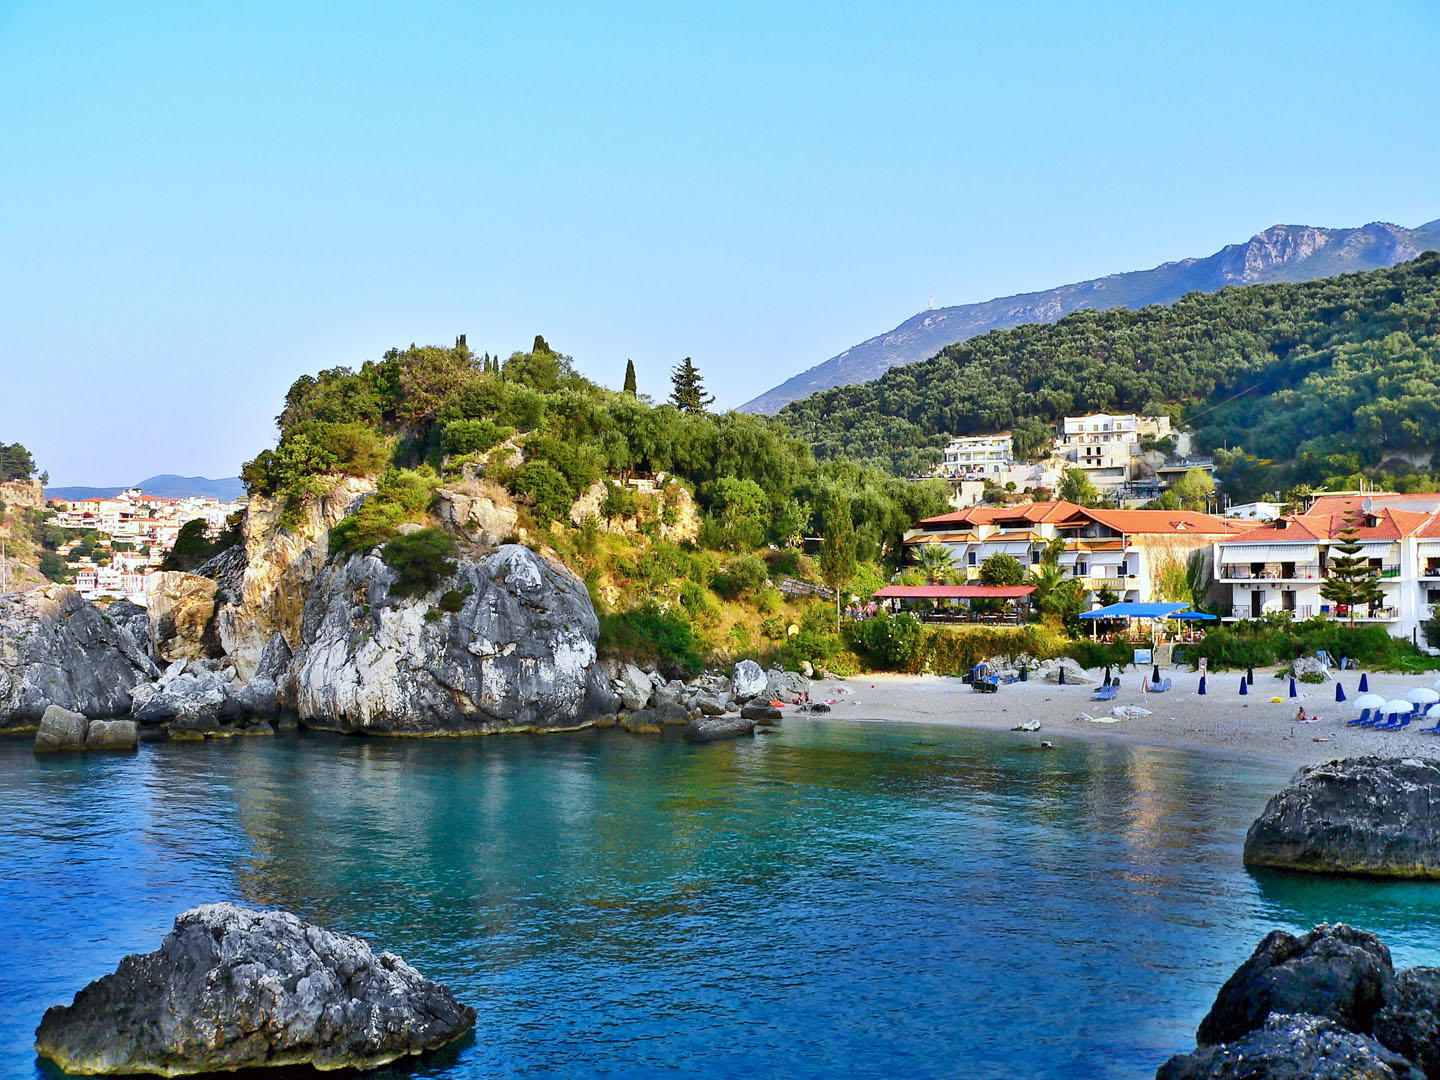 Piso-Krioneri-parga-walking-path-with-Ionian-Cruises